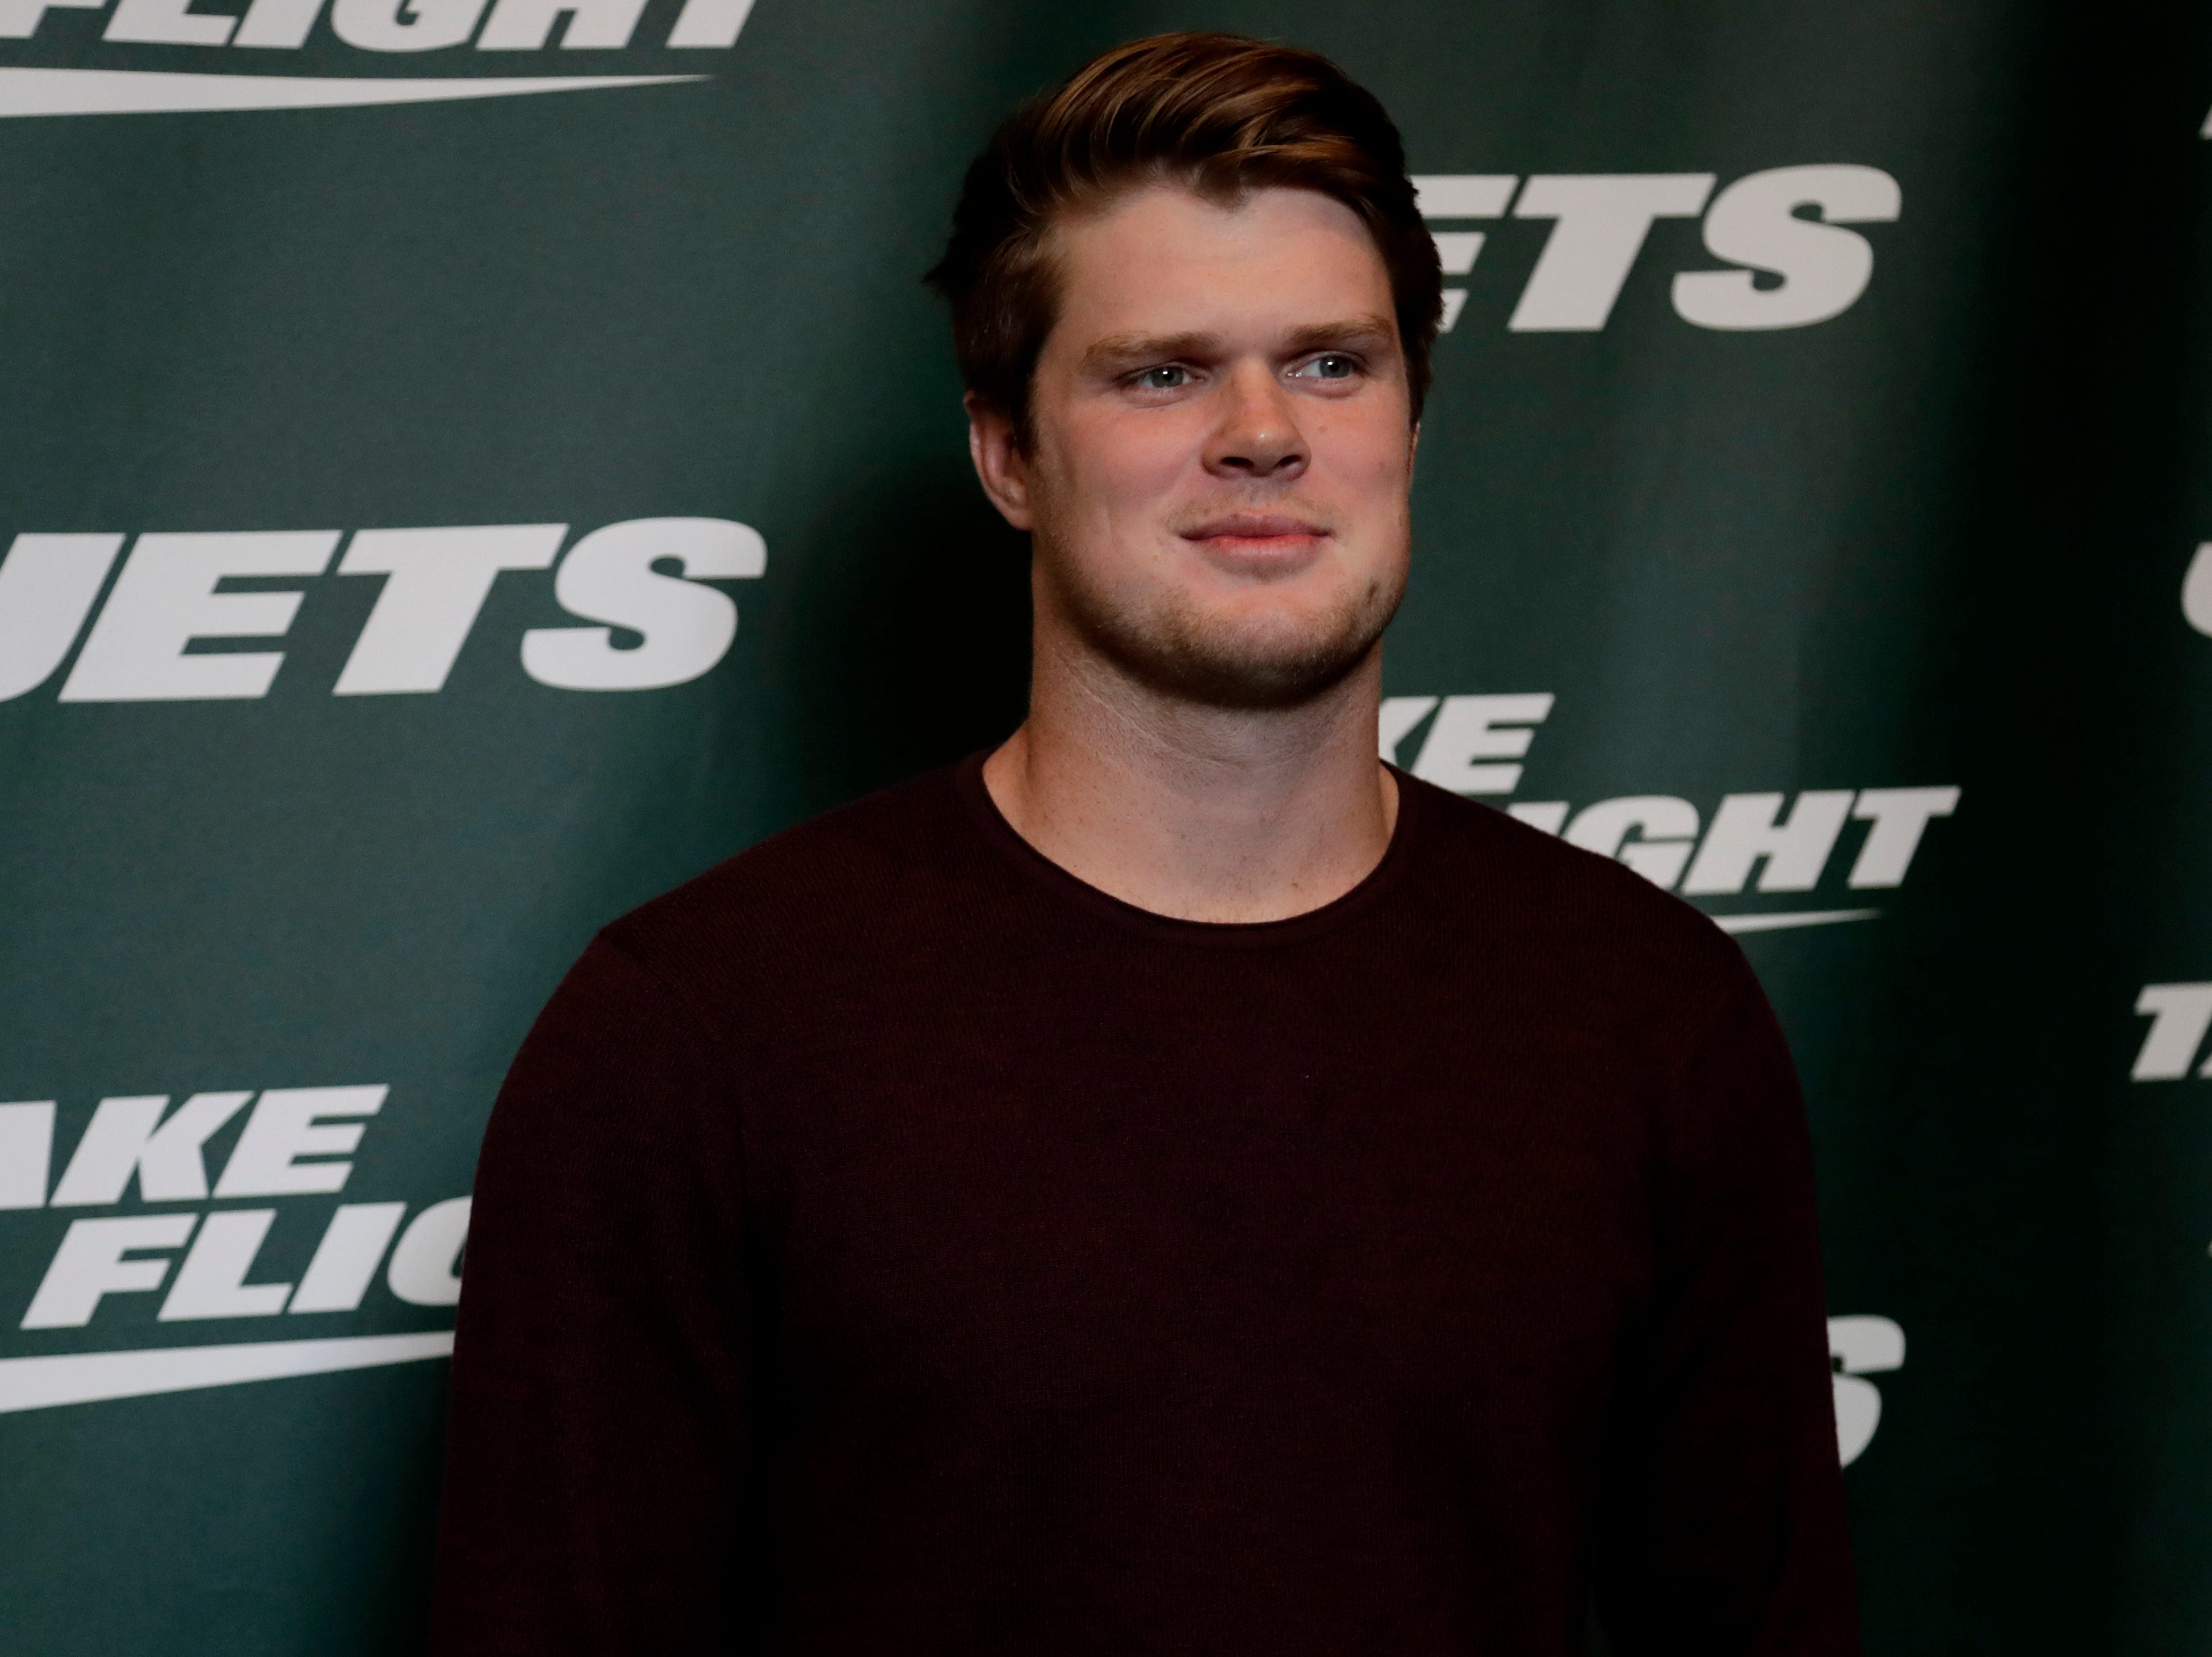 New York Jets quarterback Sam Darnold poses for photographers on the green carpet ahead of an event unveiling the NFL football team's new uniforms Thursday, April 4, 2019, in New York. (AP Photo/Julio Cortez)